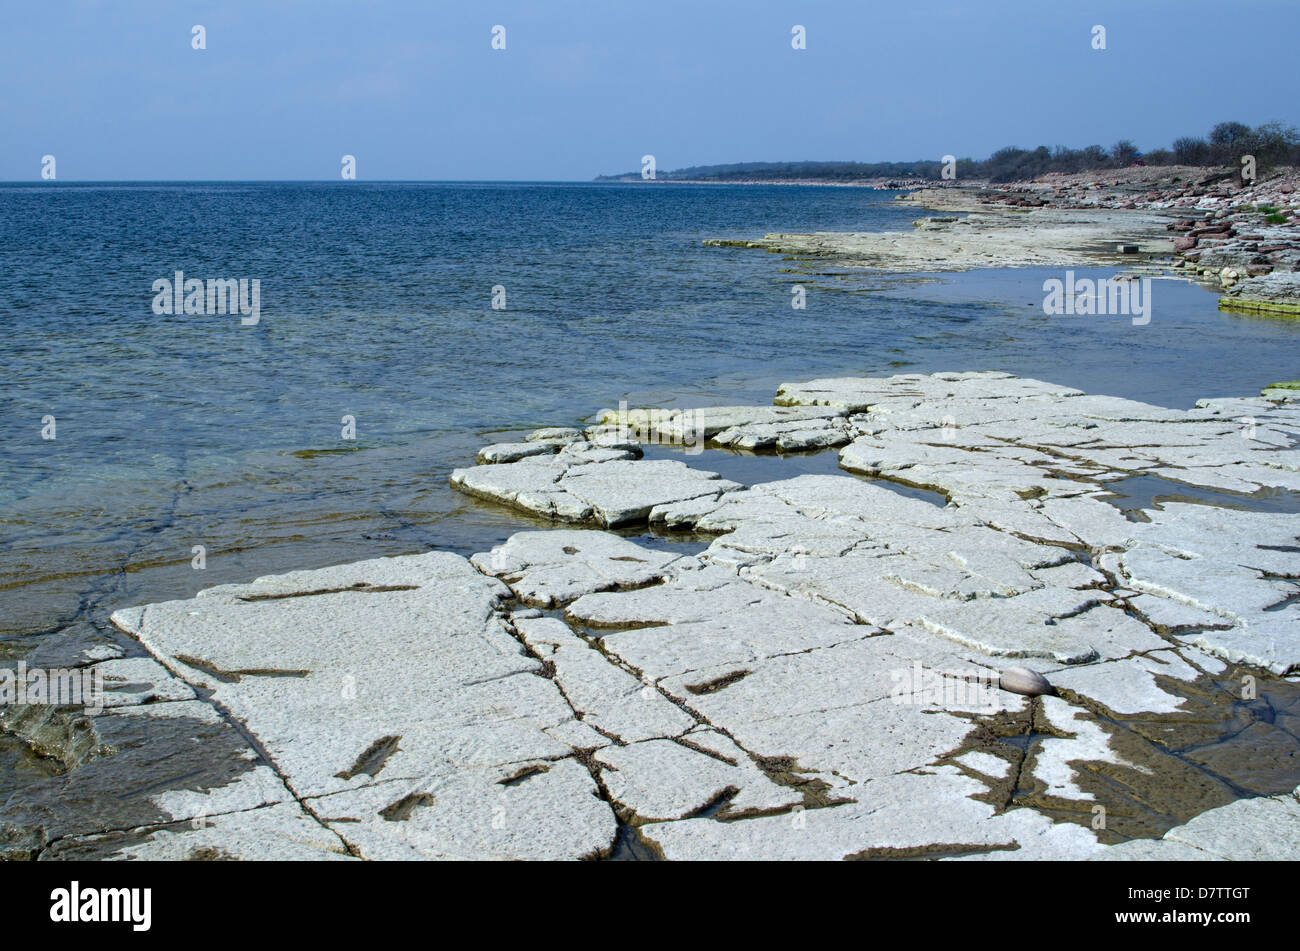 View over a flat rock coast at the swedish island Oland in the Baltic sea - Stock Image